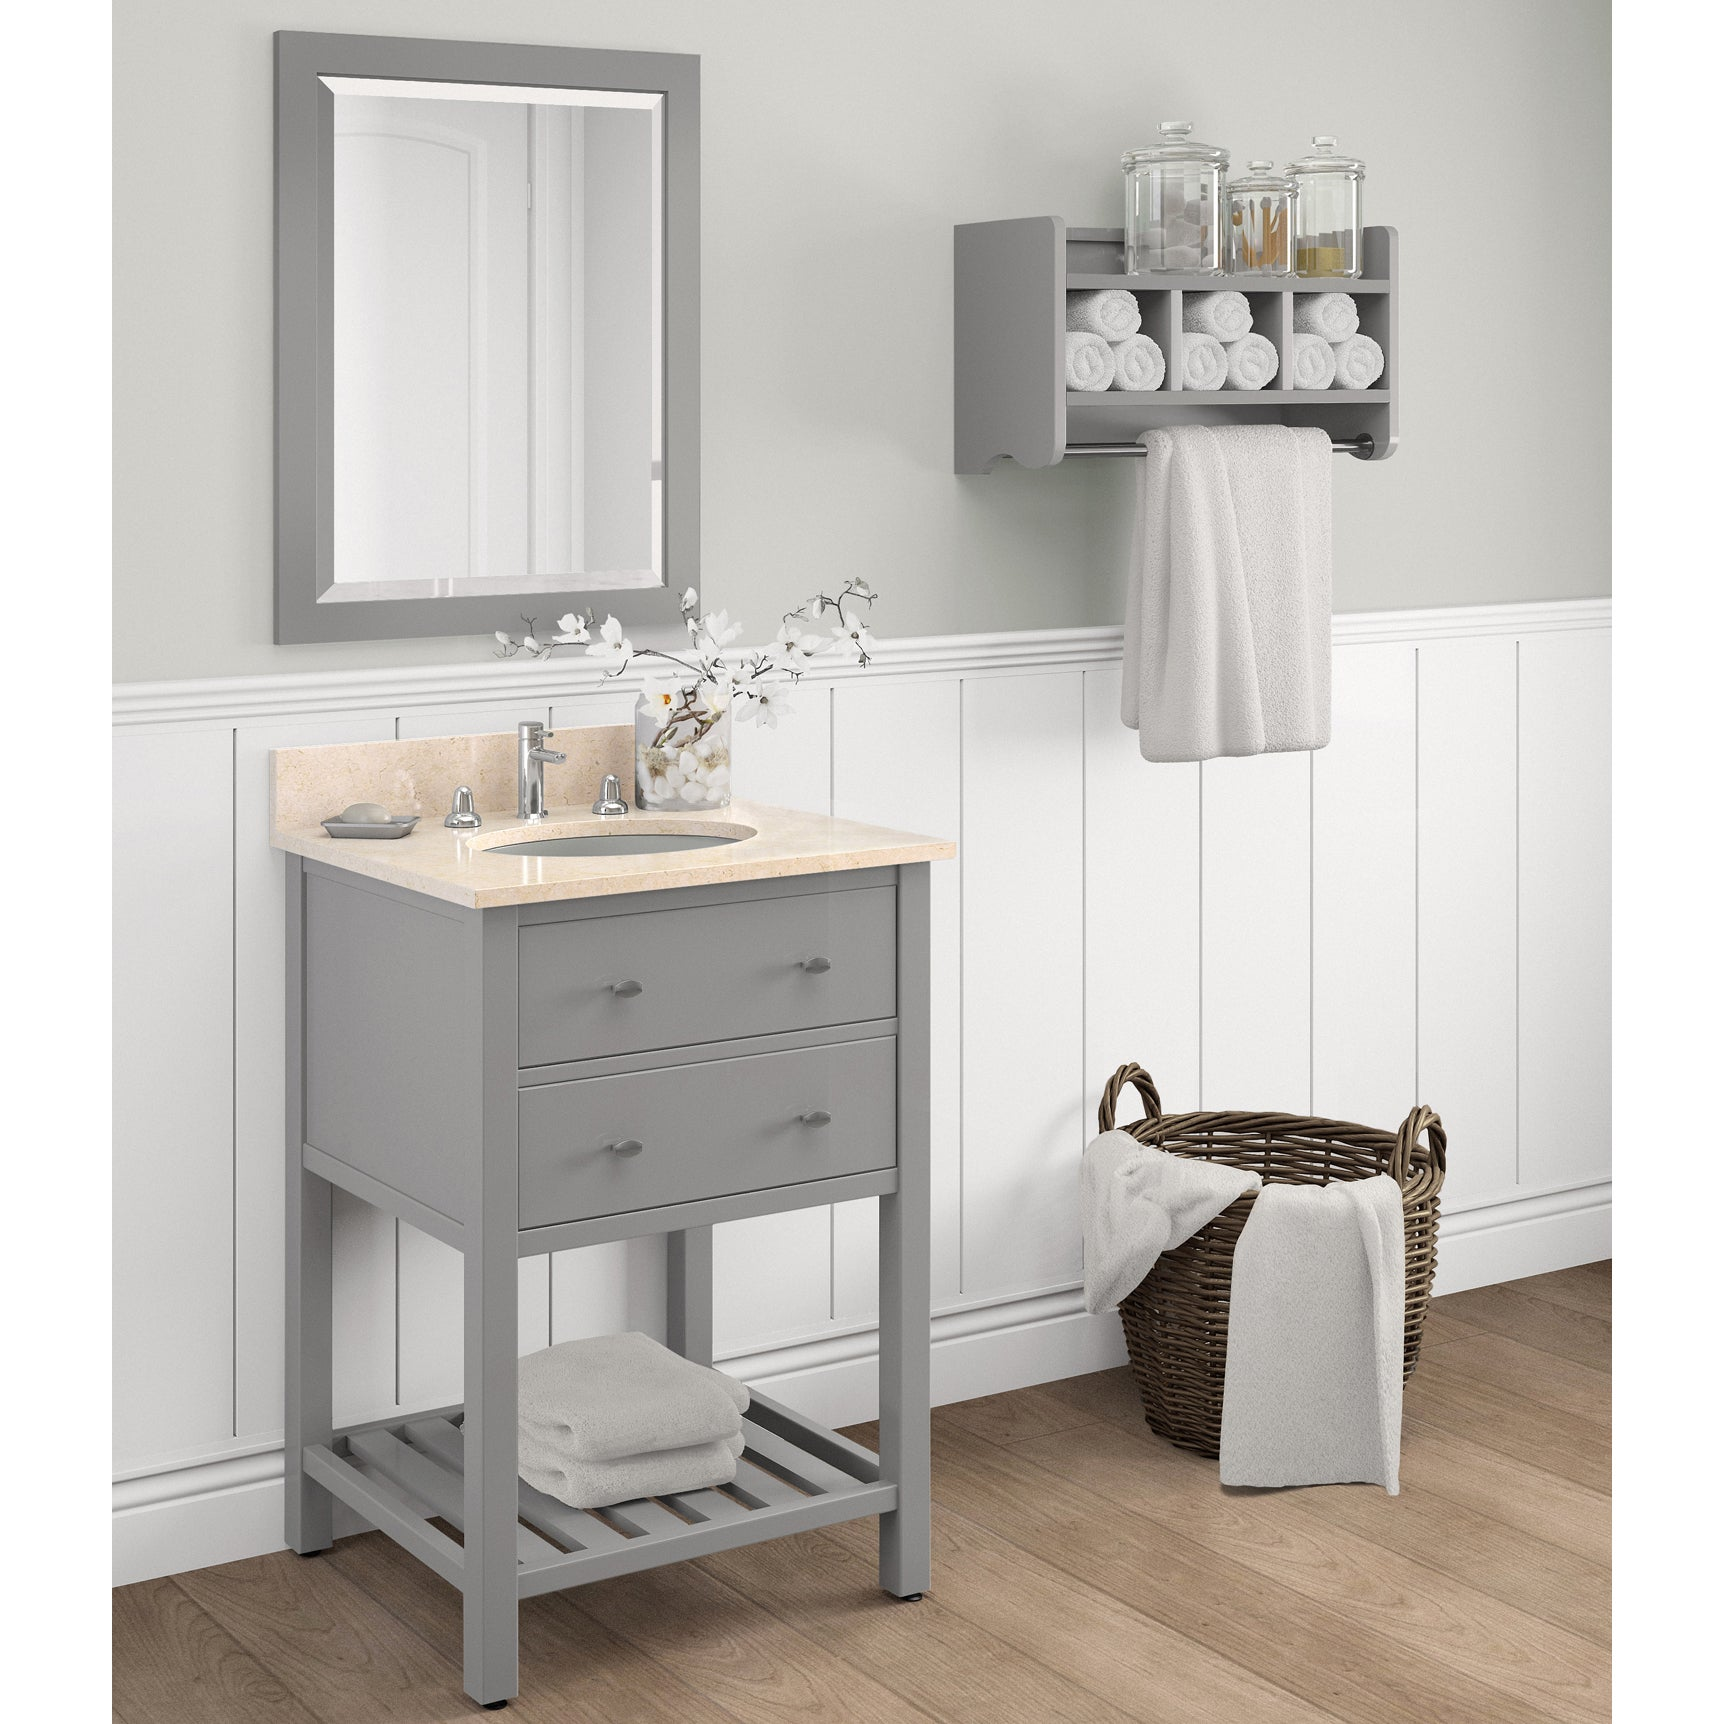 Shop Harrison Marble Sink Grey 24 In Bathroom Vanity With Storage Shelf And  Mirror Set   Free Shipping Today   Overstock.com   14161867